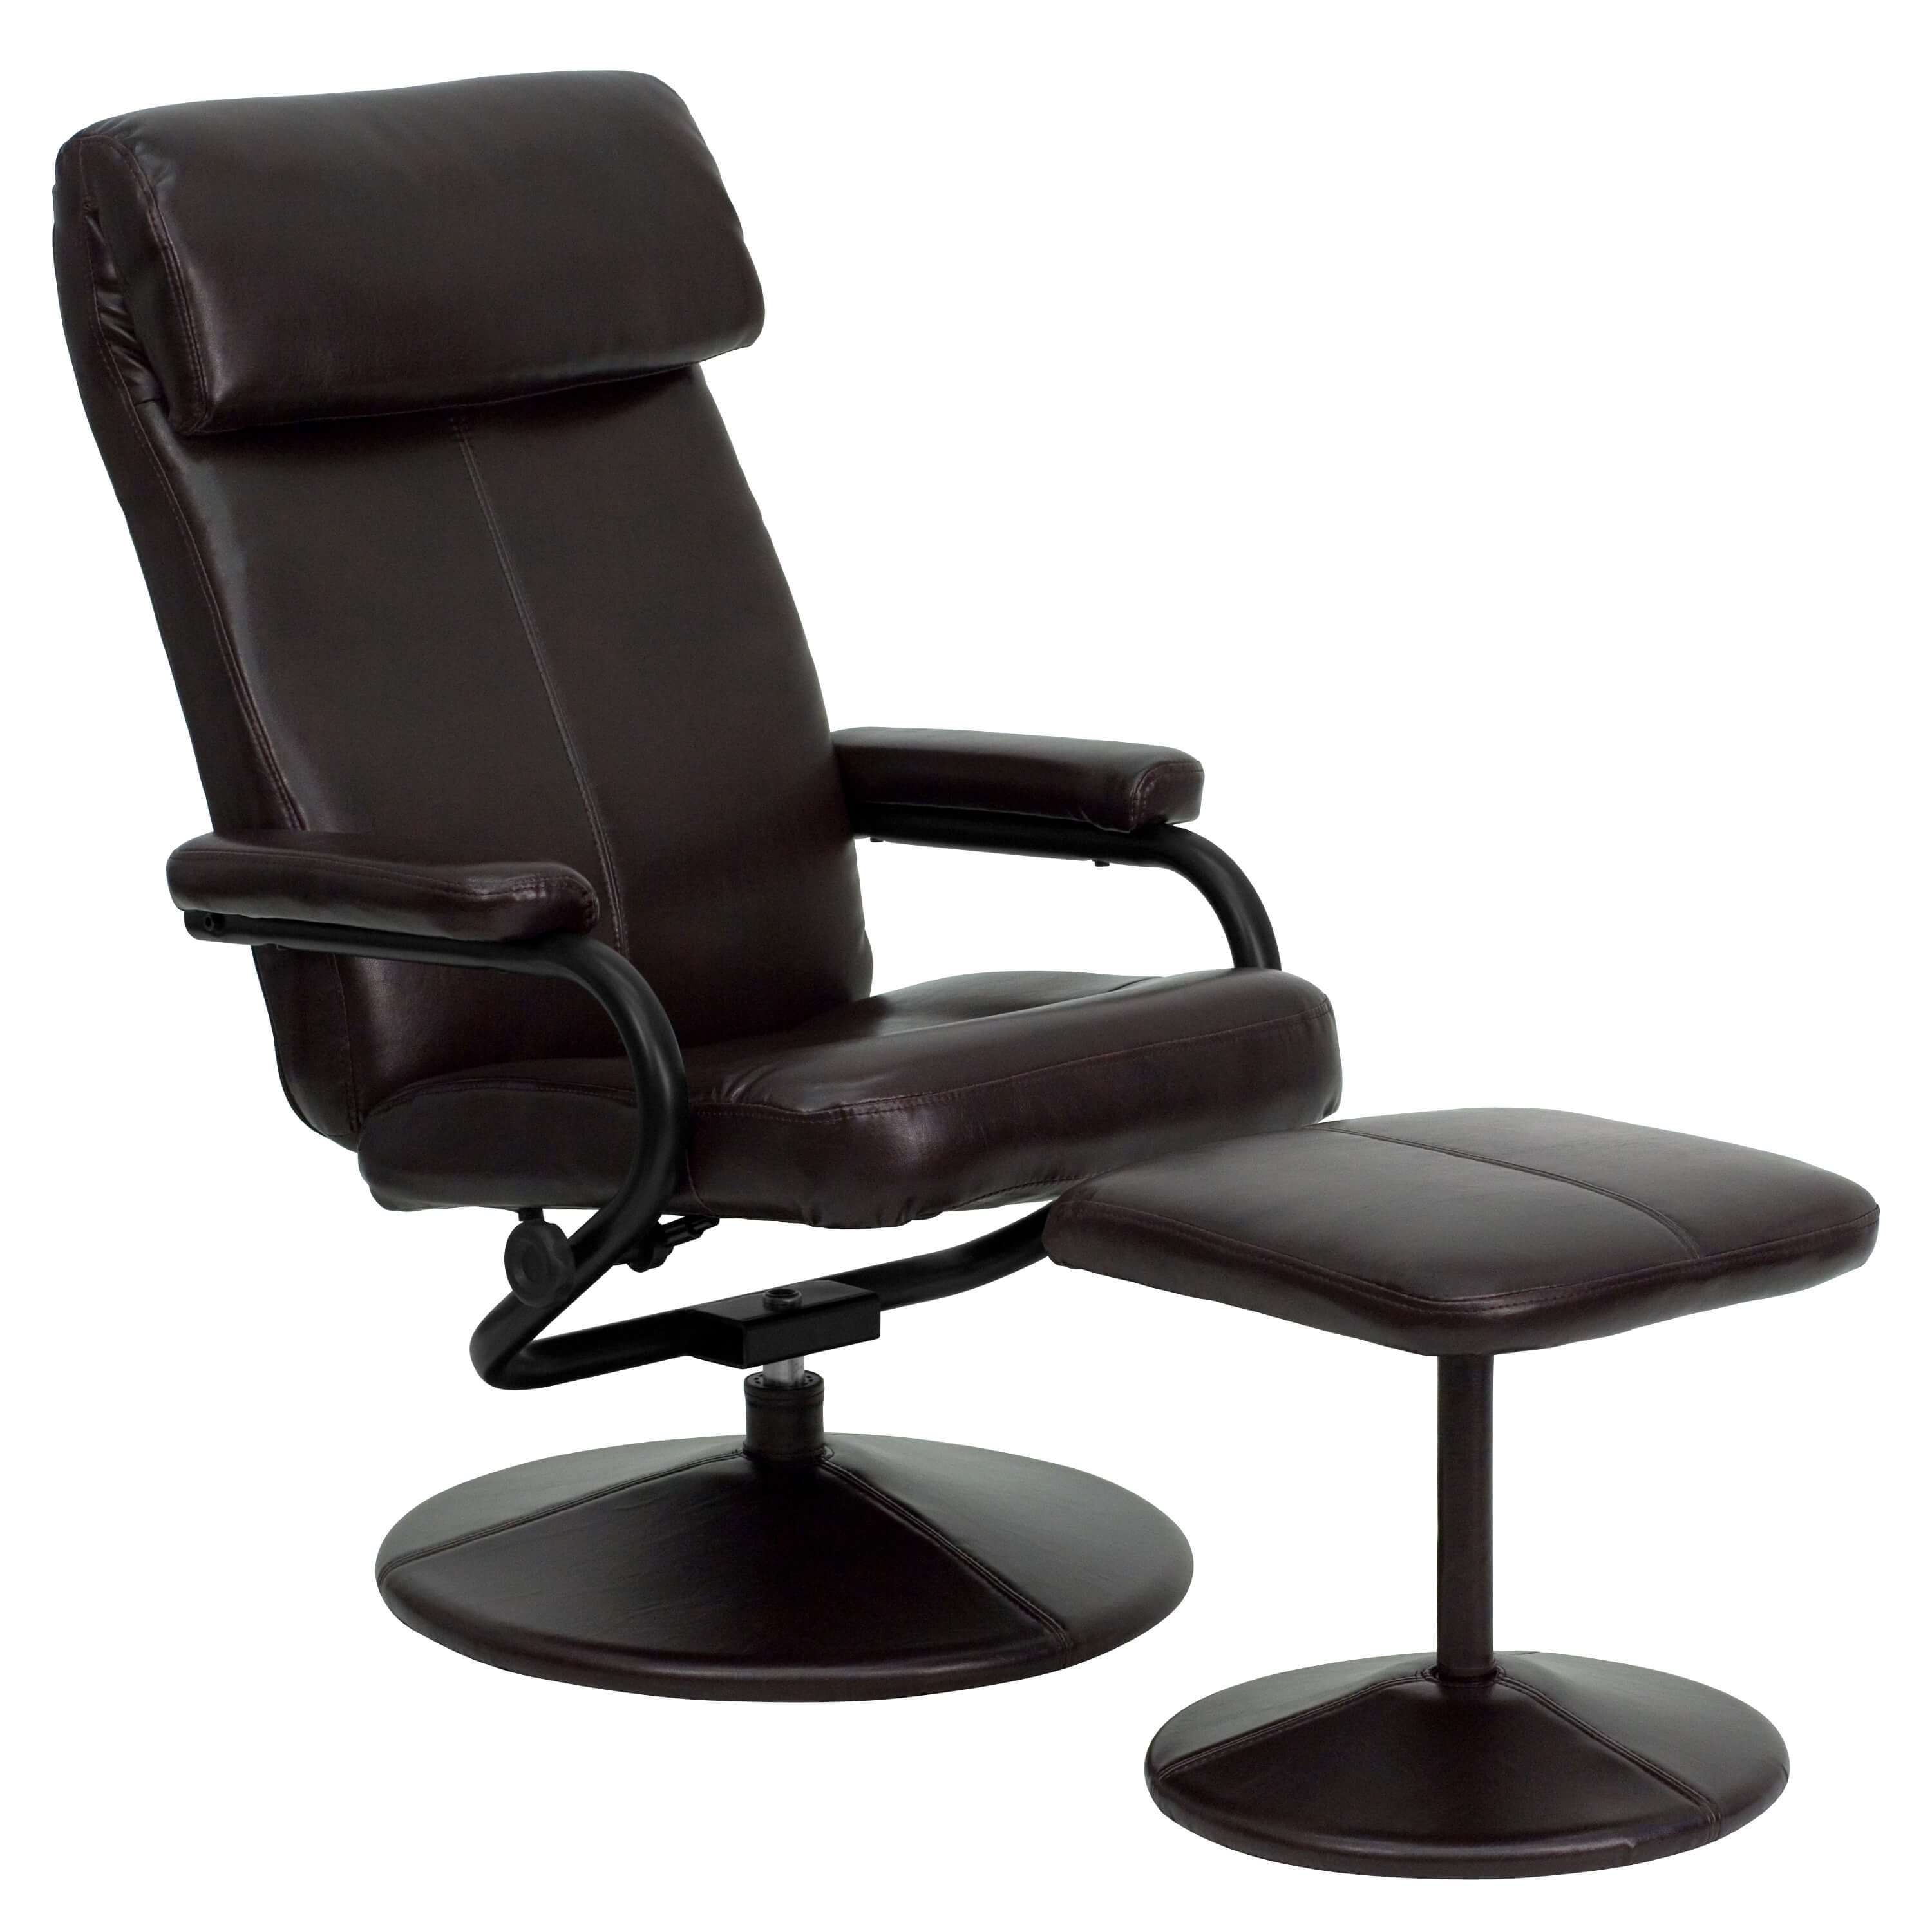 Swivel recliner CUB BT 7863 BN GG FLA